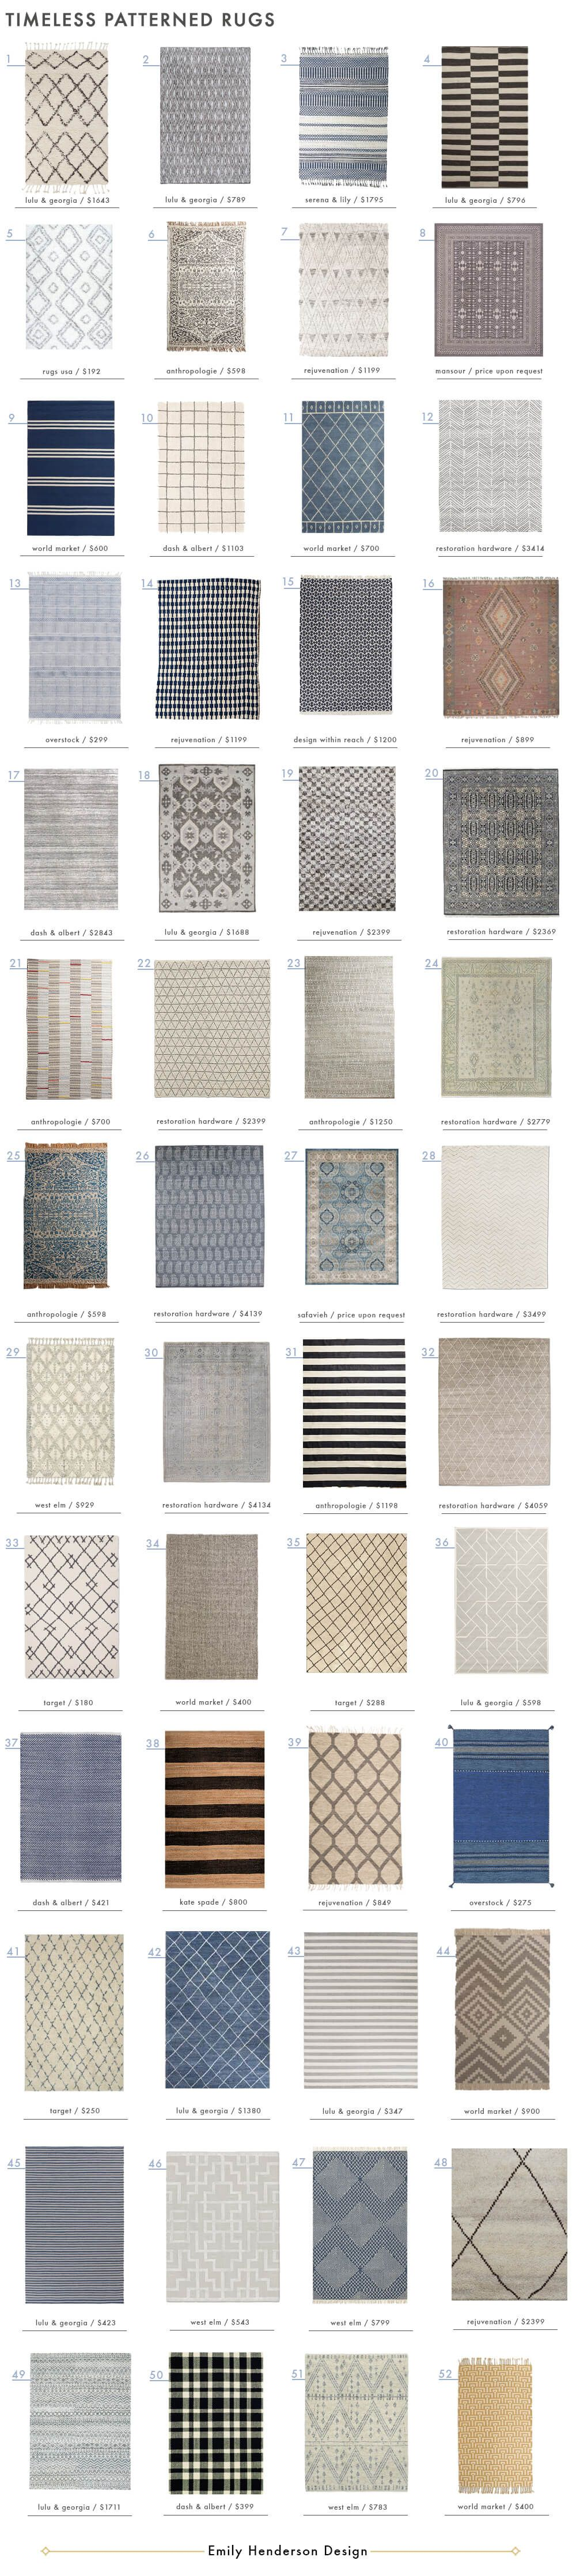 52 Timeless Patterned Rugs | Large area rugs, Living rooms and Room